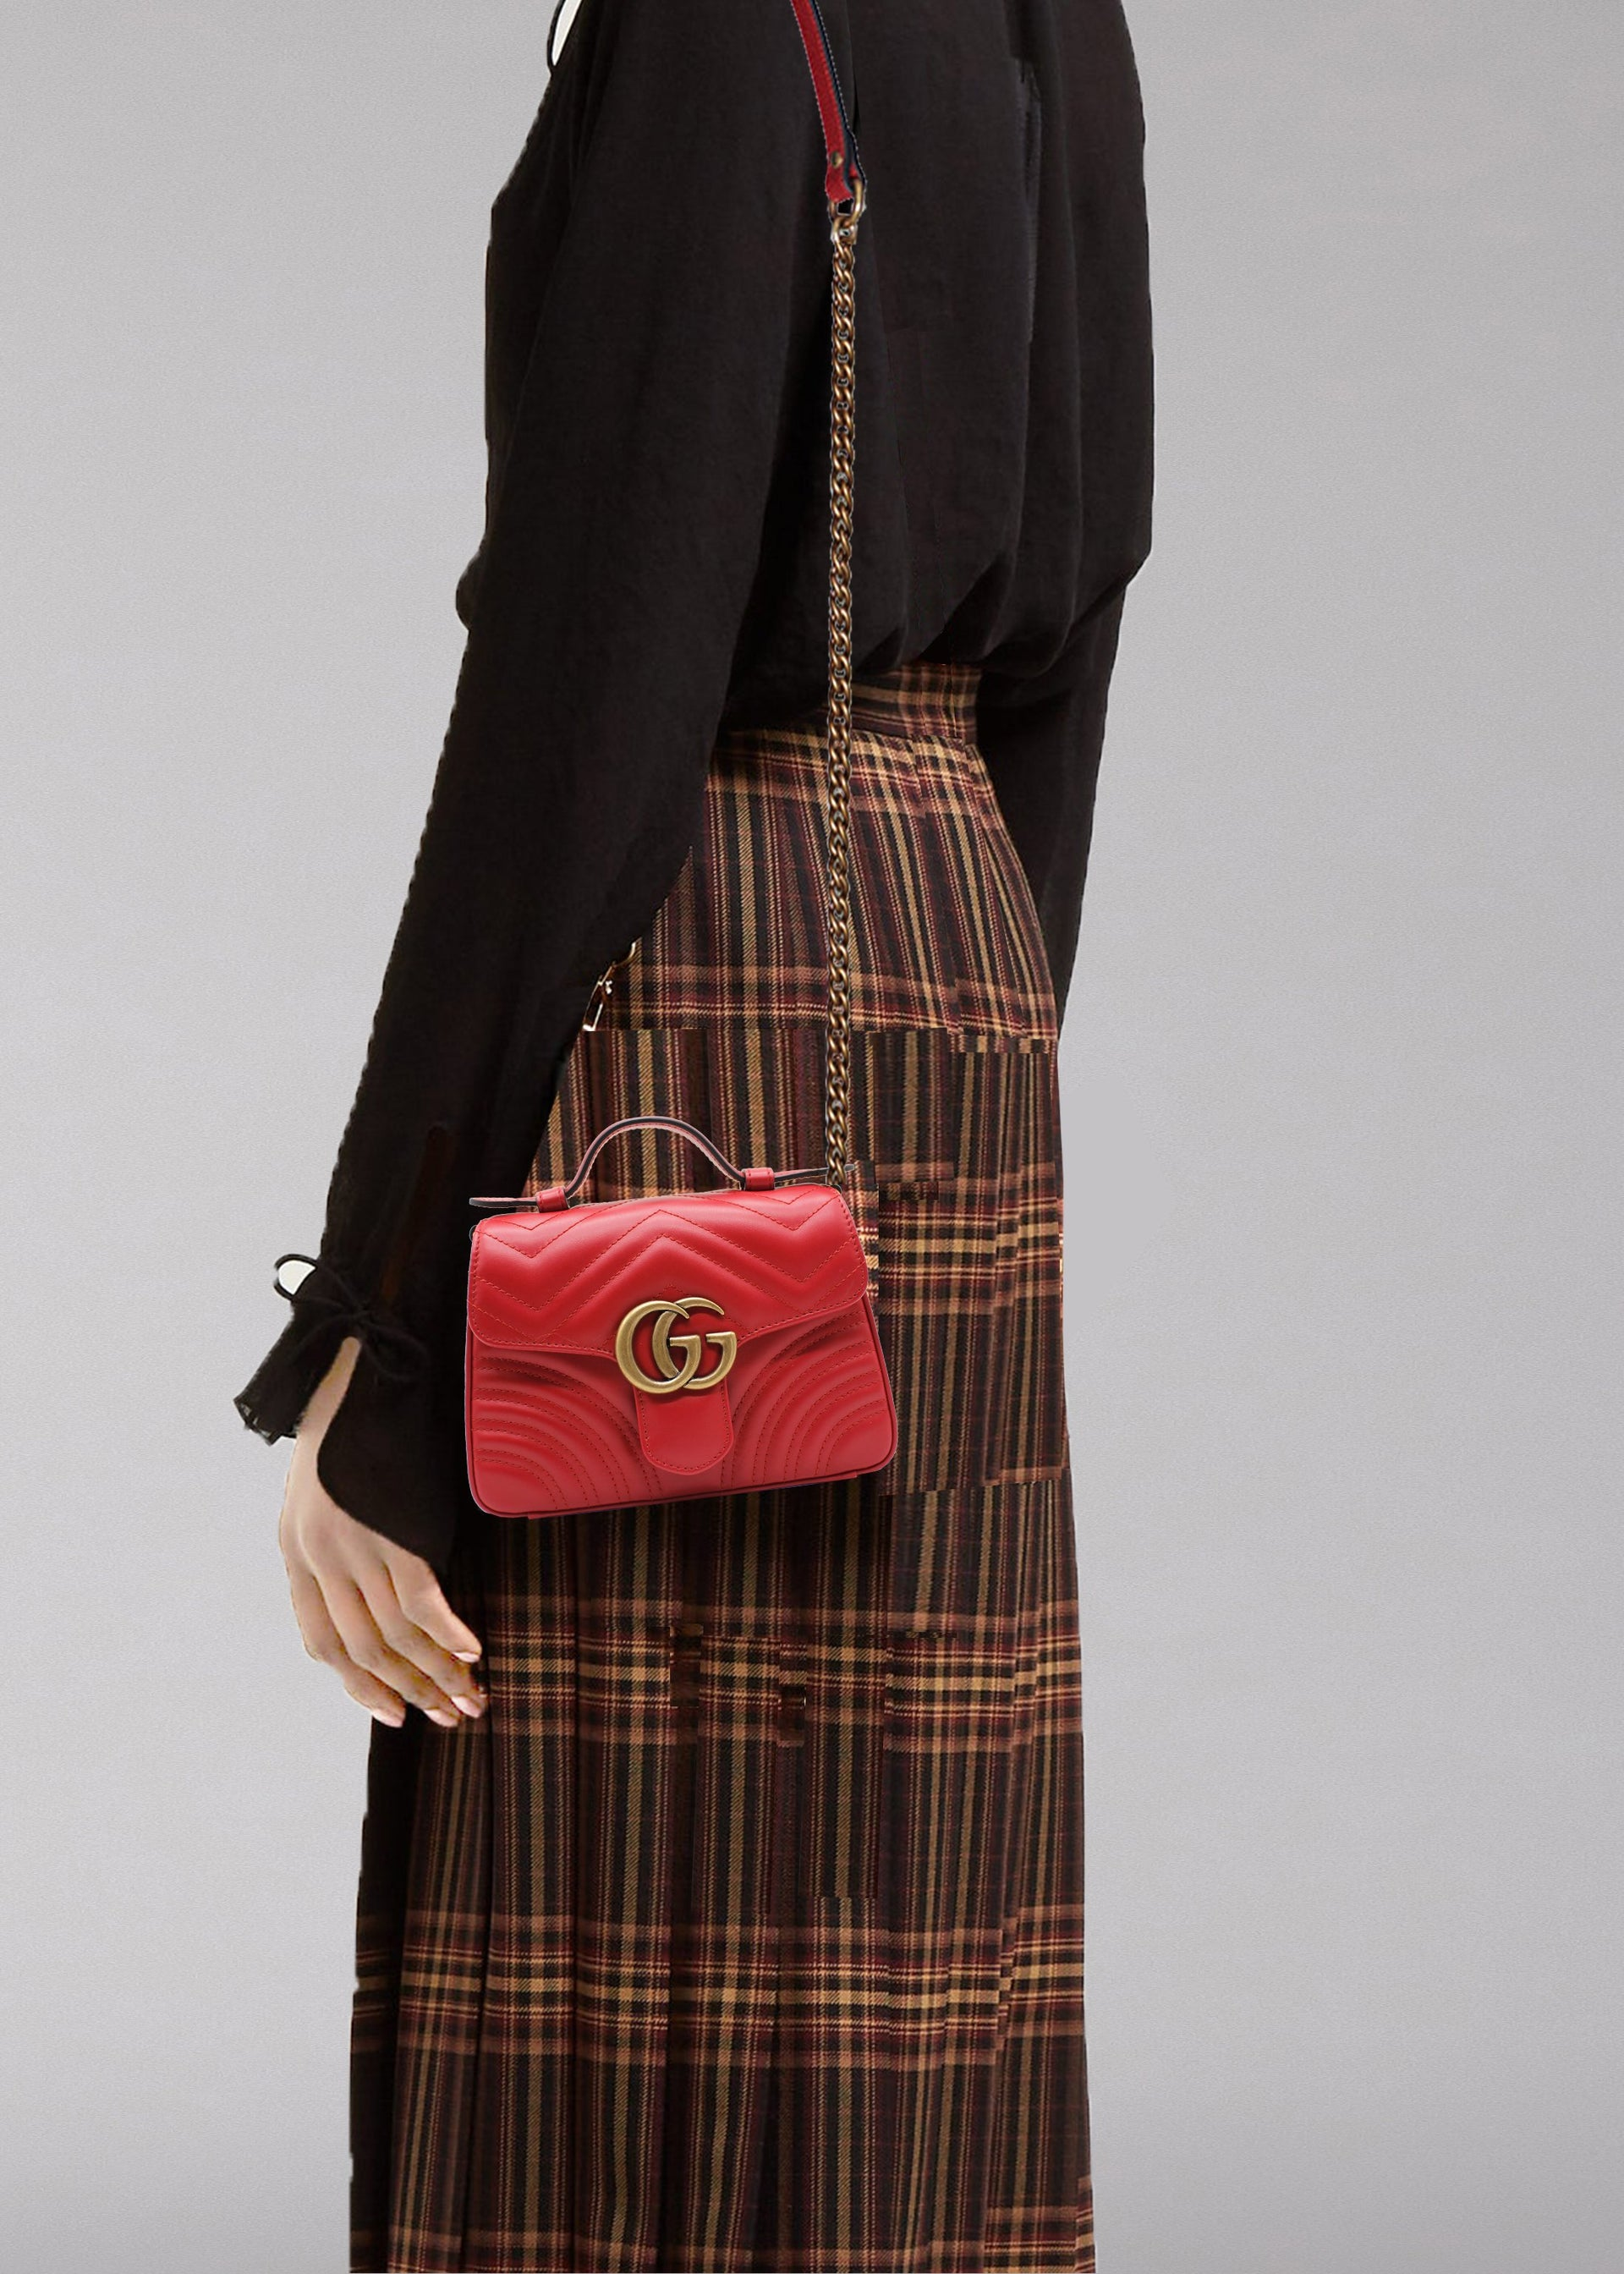 Gucci GG Marmont mini top handle bag